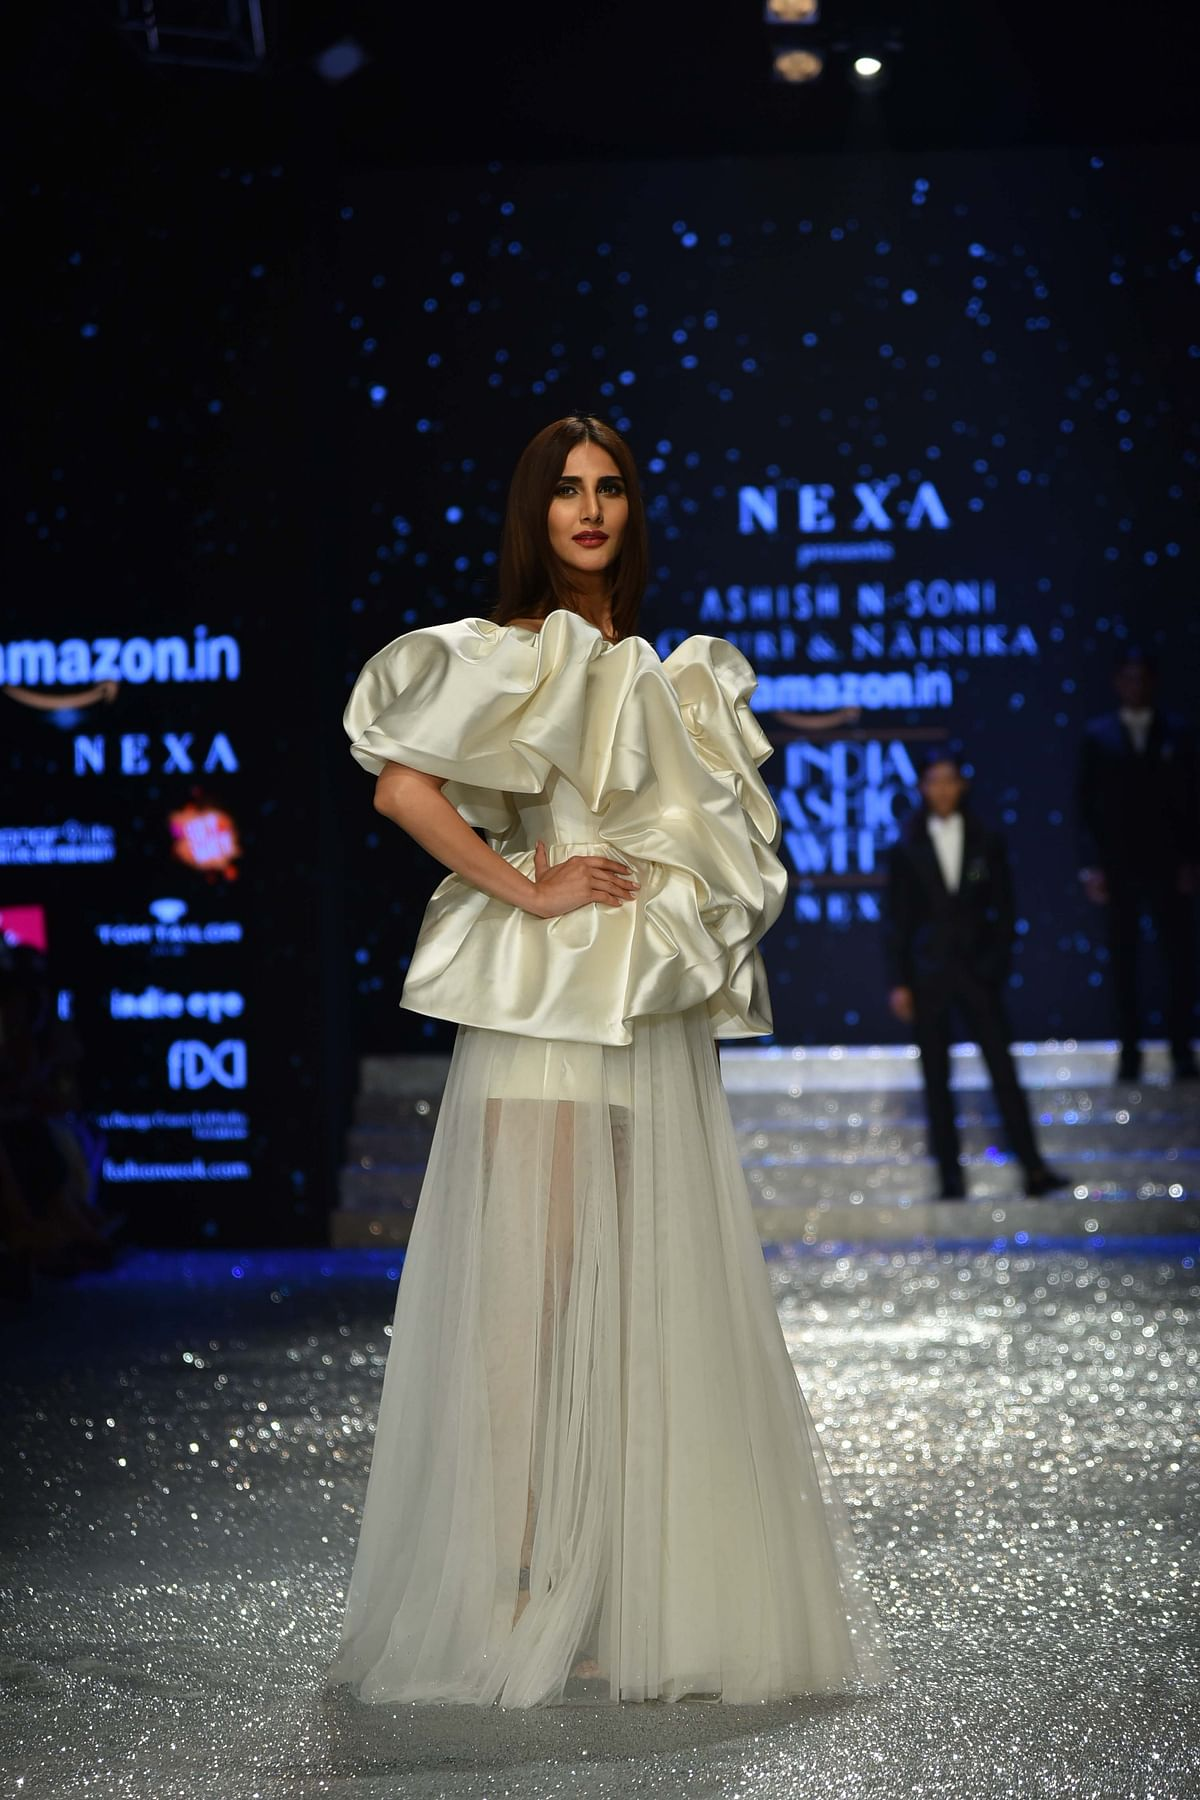 Vaani Kapoor looks like a vision in white as she dons a sheer outfit with ruffles designed by Gauri and Nainika.